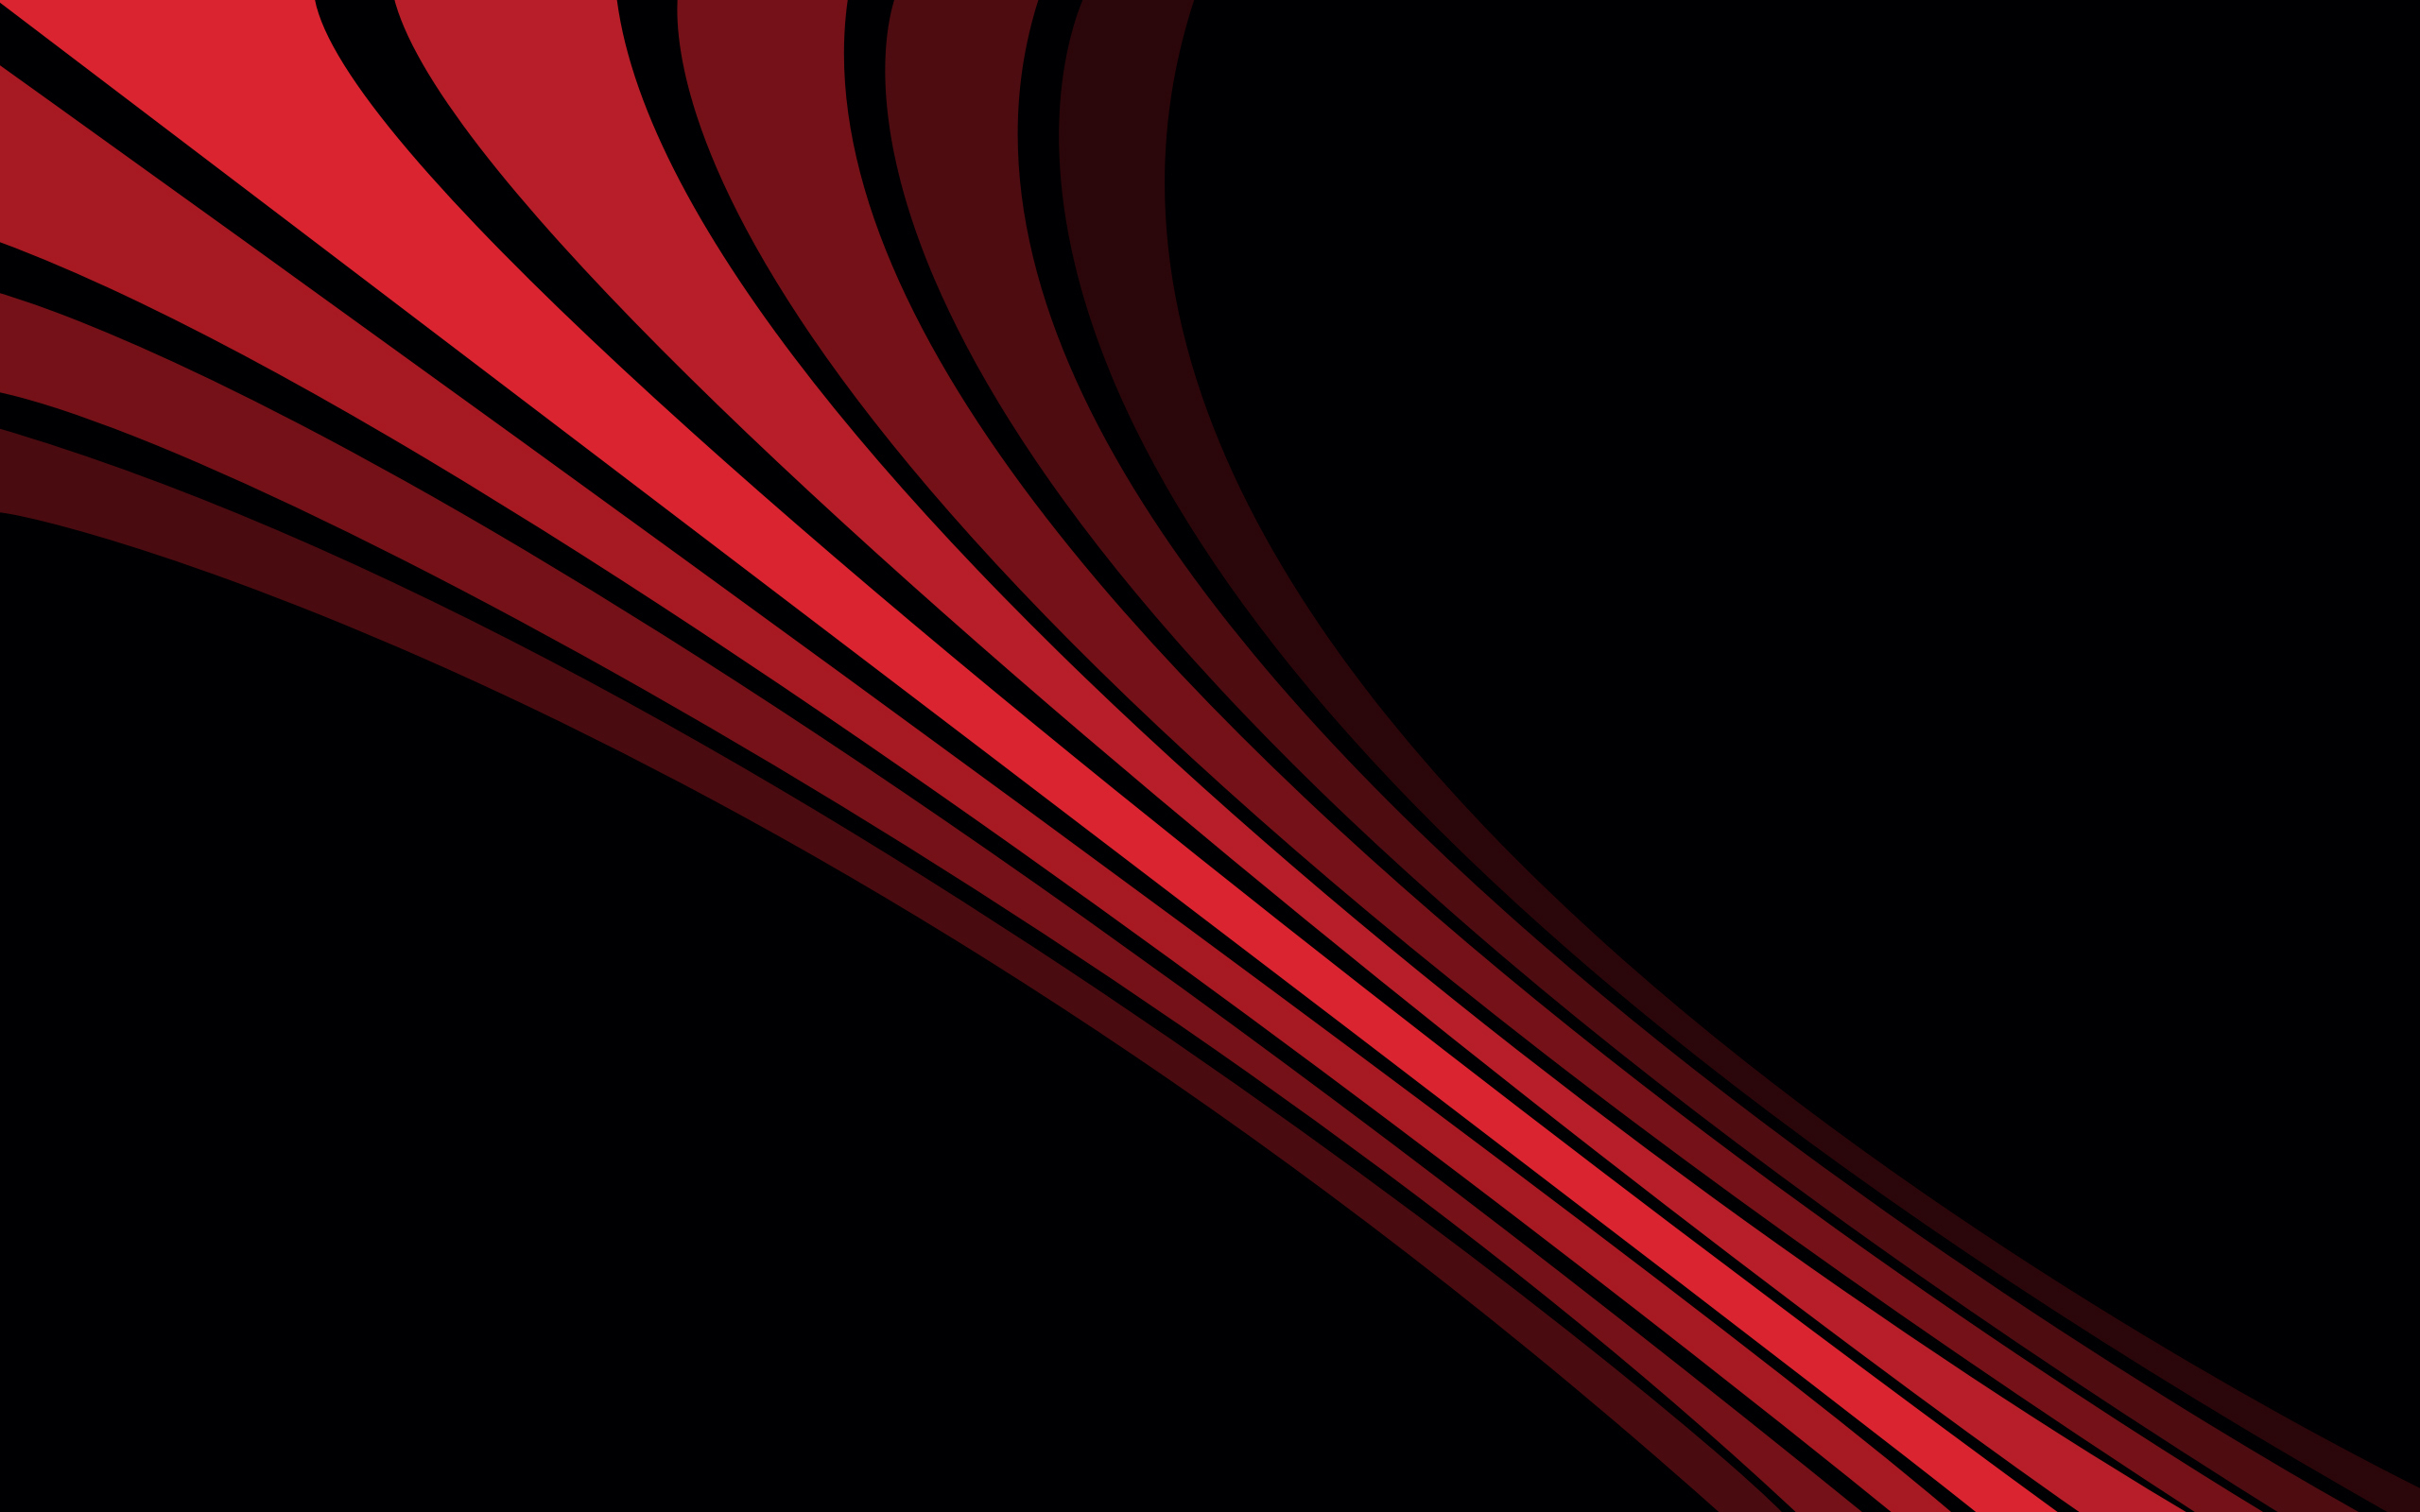 Hd wallpaper red and black - Cool Red And Black Desktop Background 1 Free Hd Wallpaper Cool Red And Black Desktop Background 1 Free Hd Wallpaper